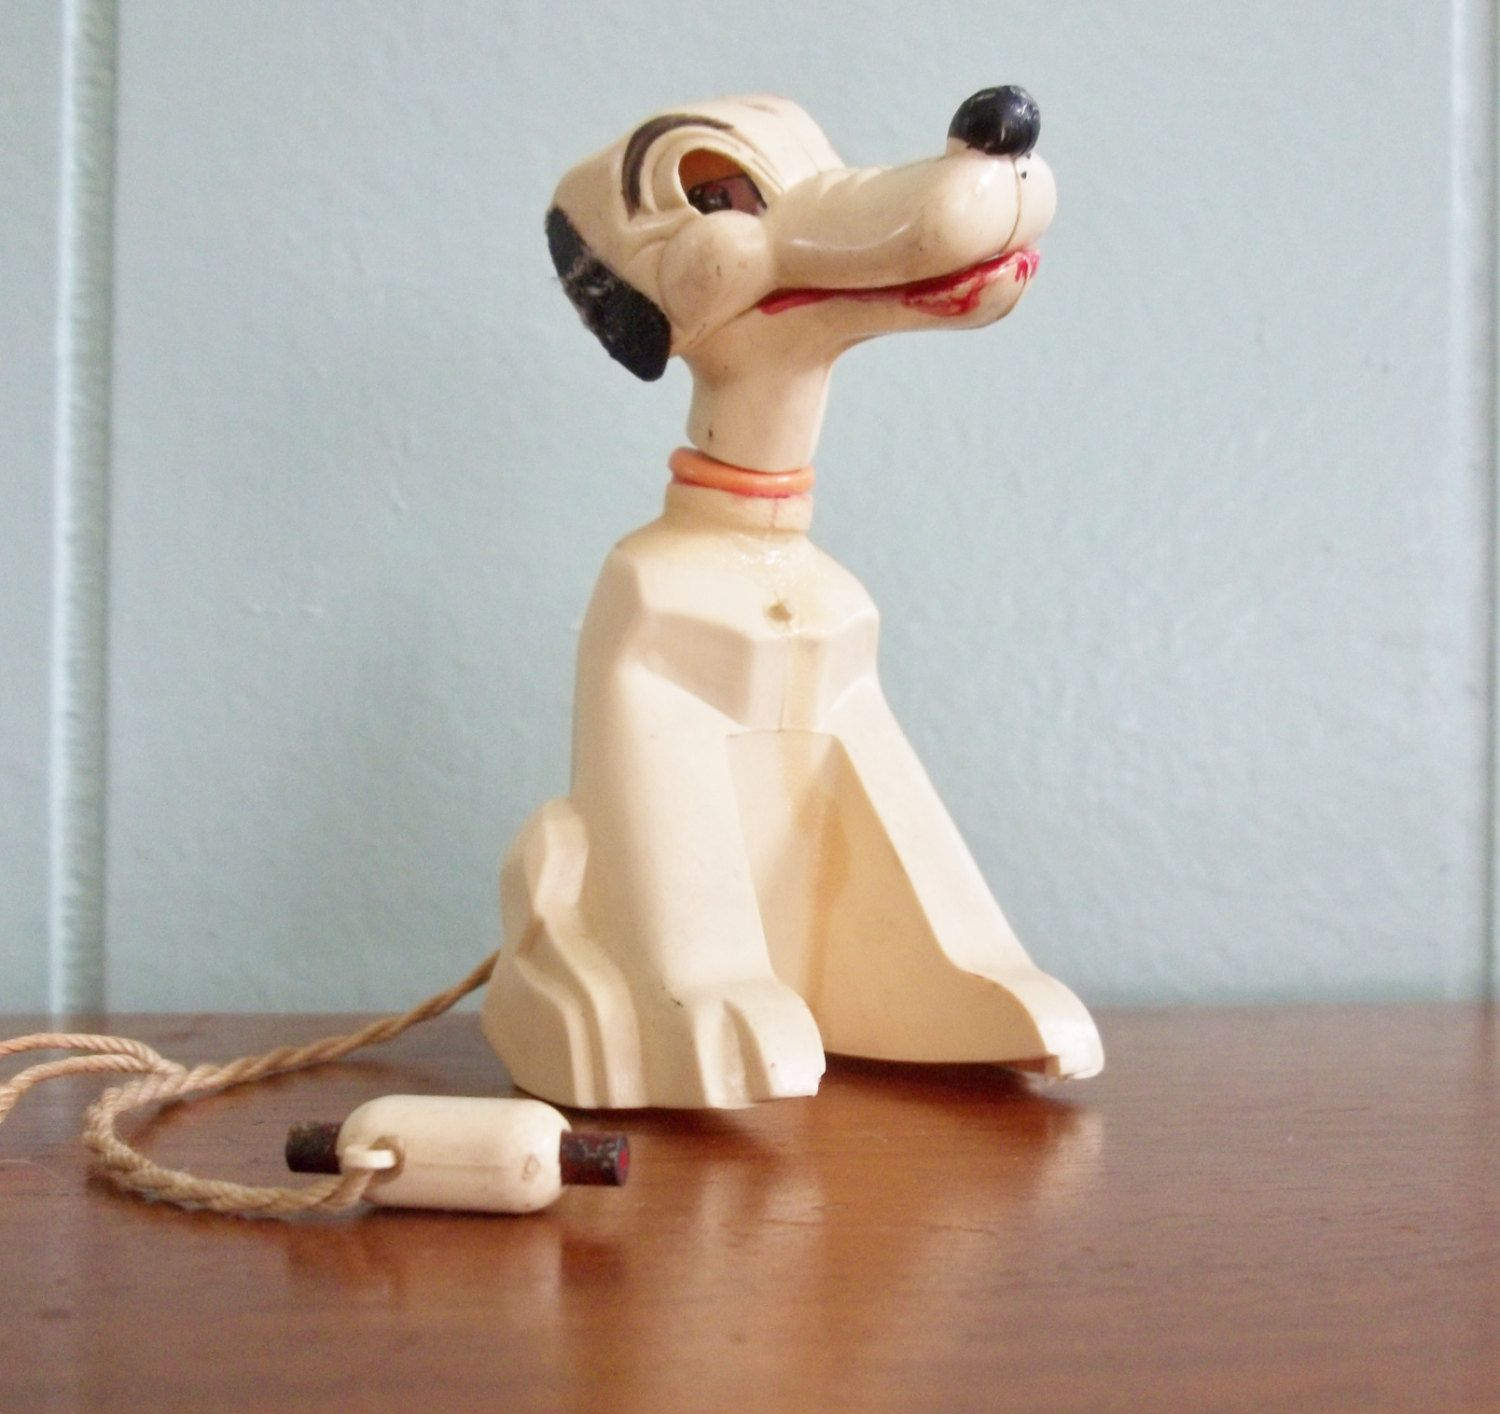 celluloid bobble head dog noddler dog s mouth opens to hold celluloid bobble head dog noddler dog s mouth opens to hold magnetic hot dog bone on string vintage toy home decor white dog with spots